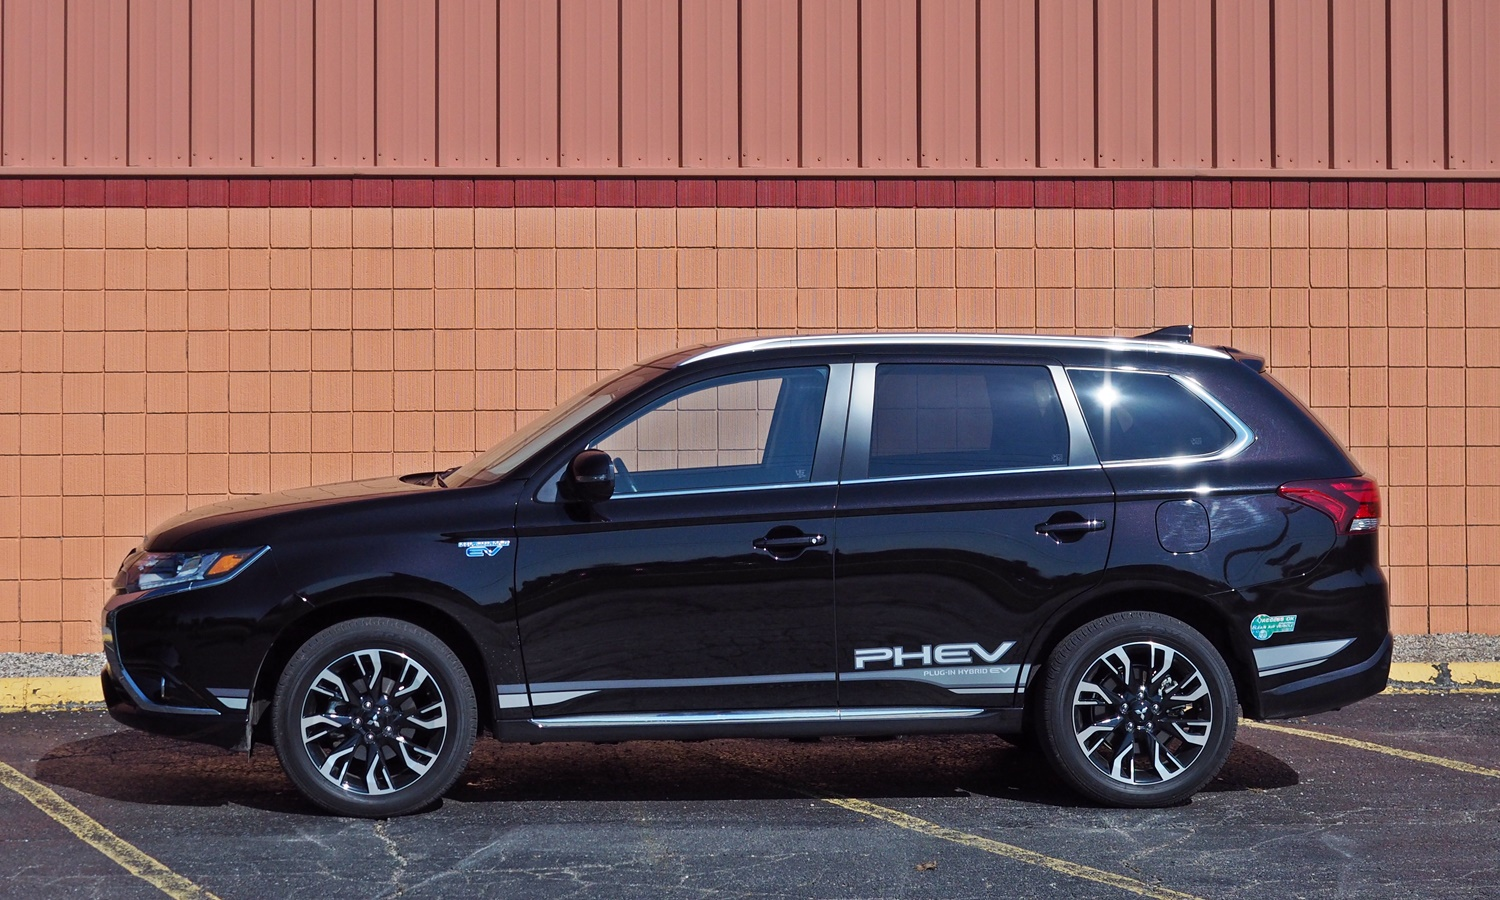 Mitsubishi Eclipse Cross Photos: Mitsubishi Outlander PHEV side view